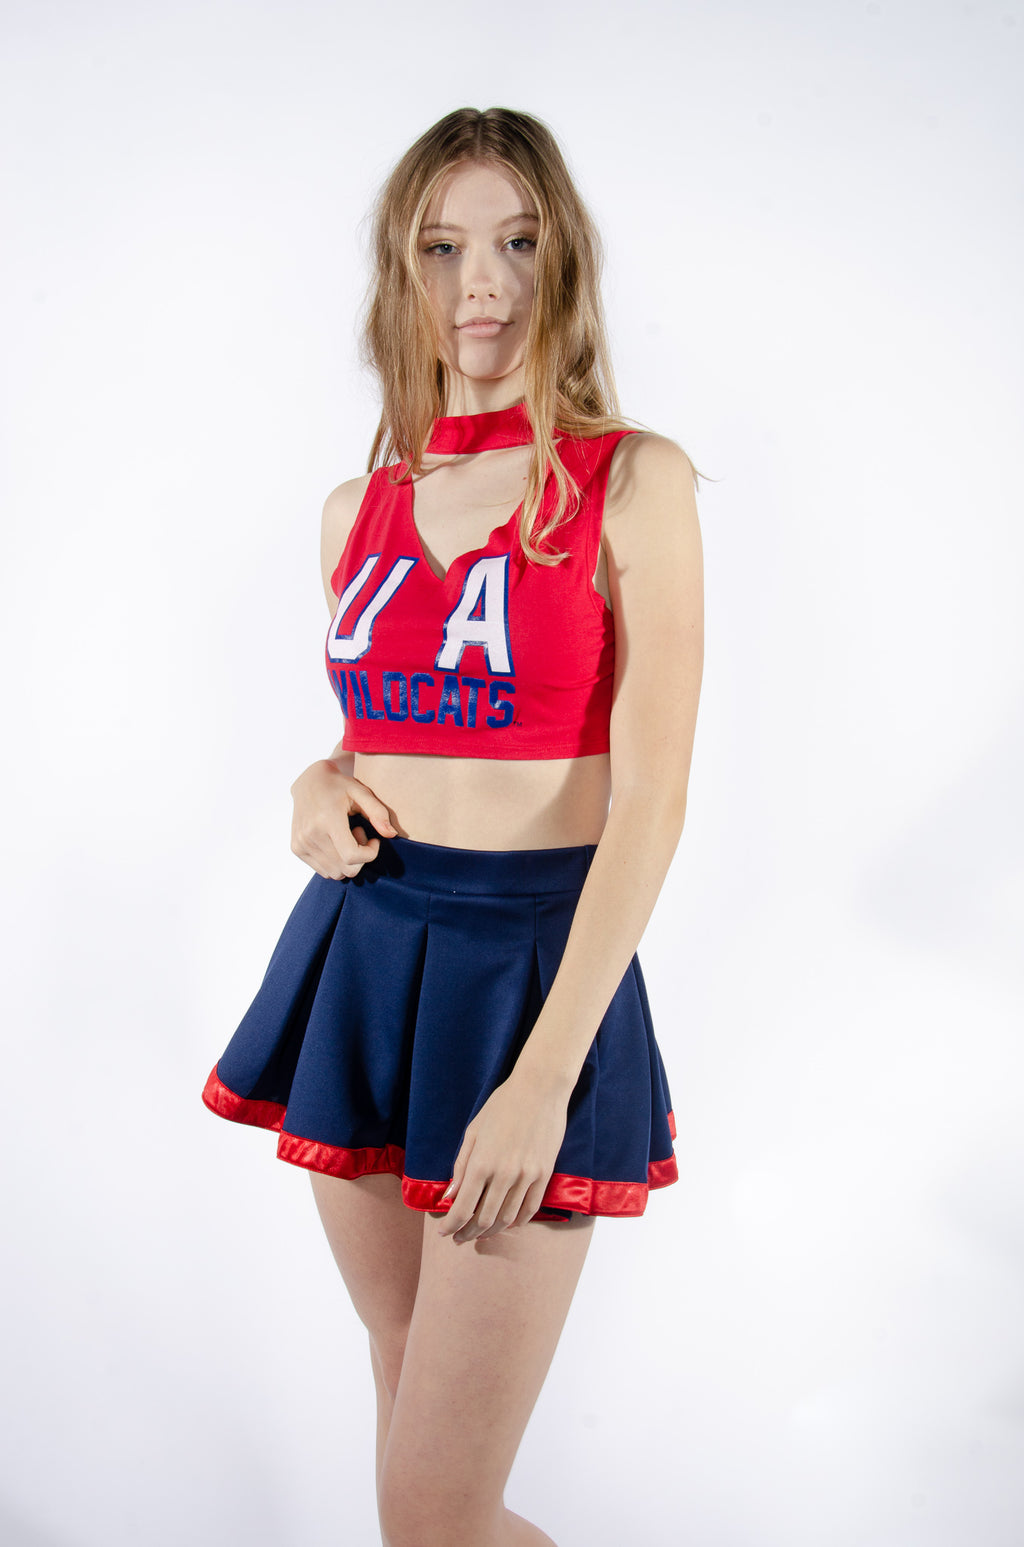 U of A Wildcats Cutout Top - Hype and Vice